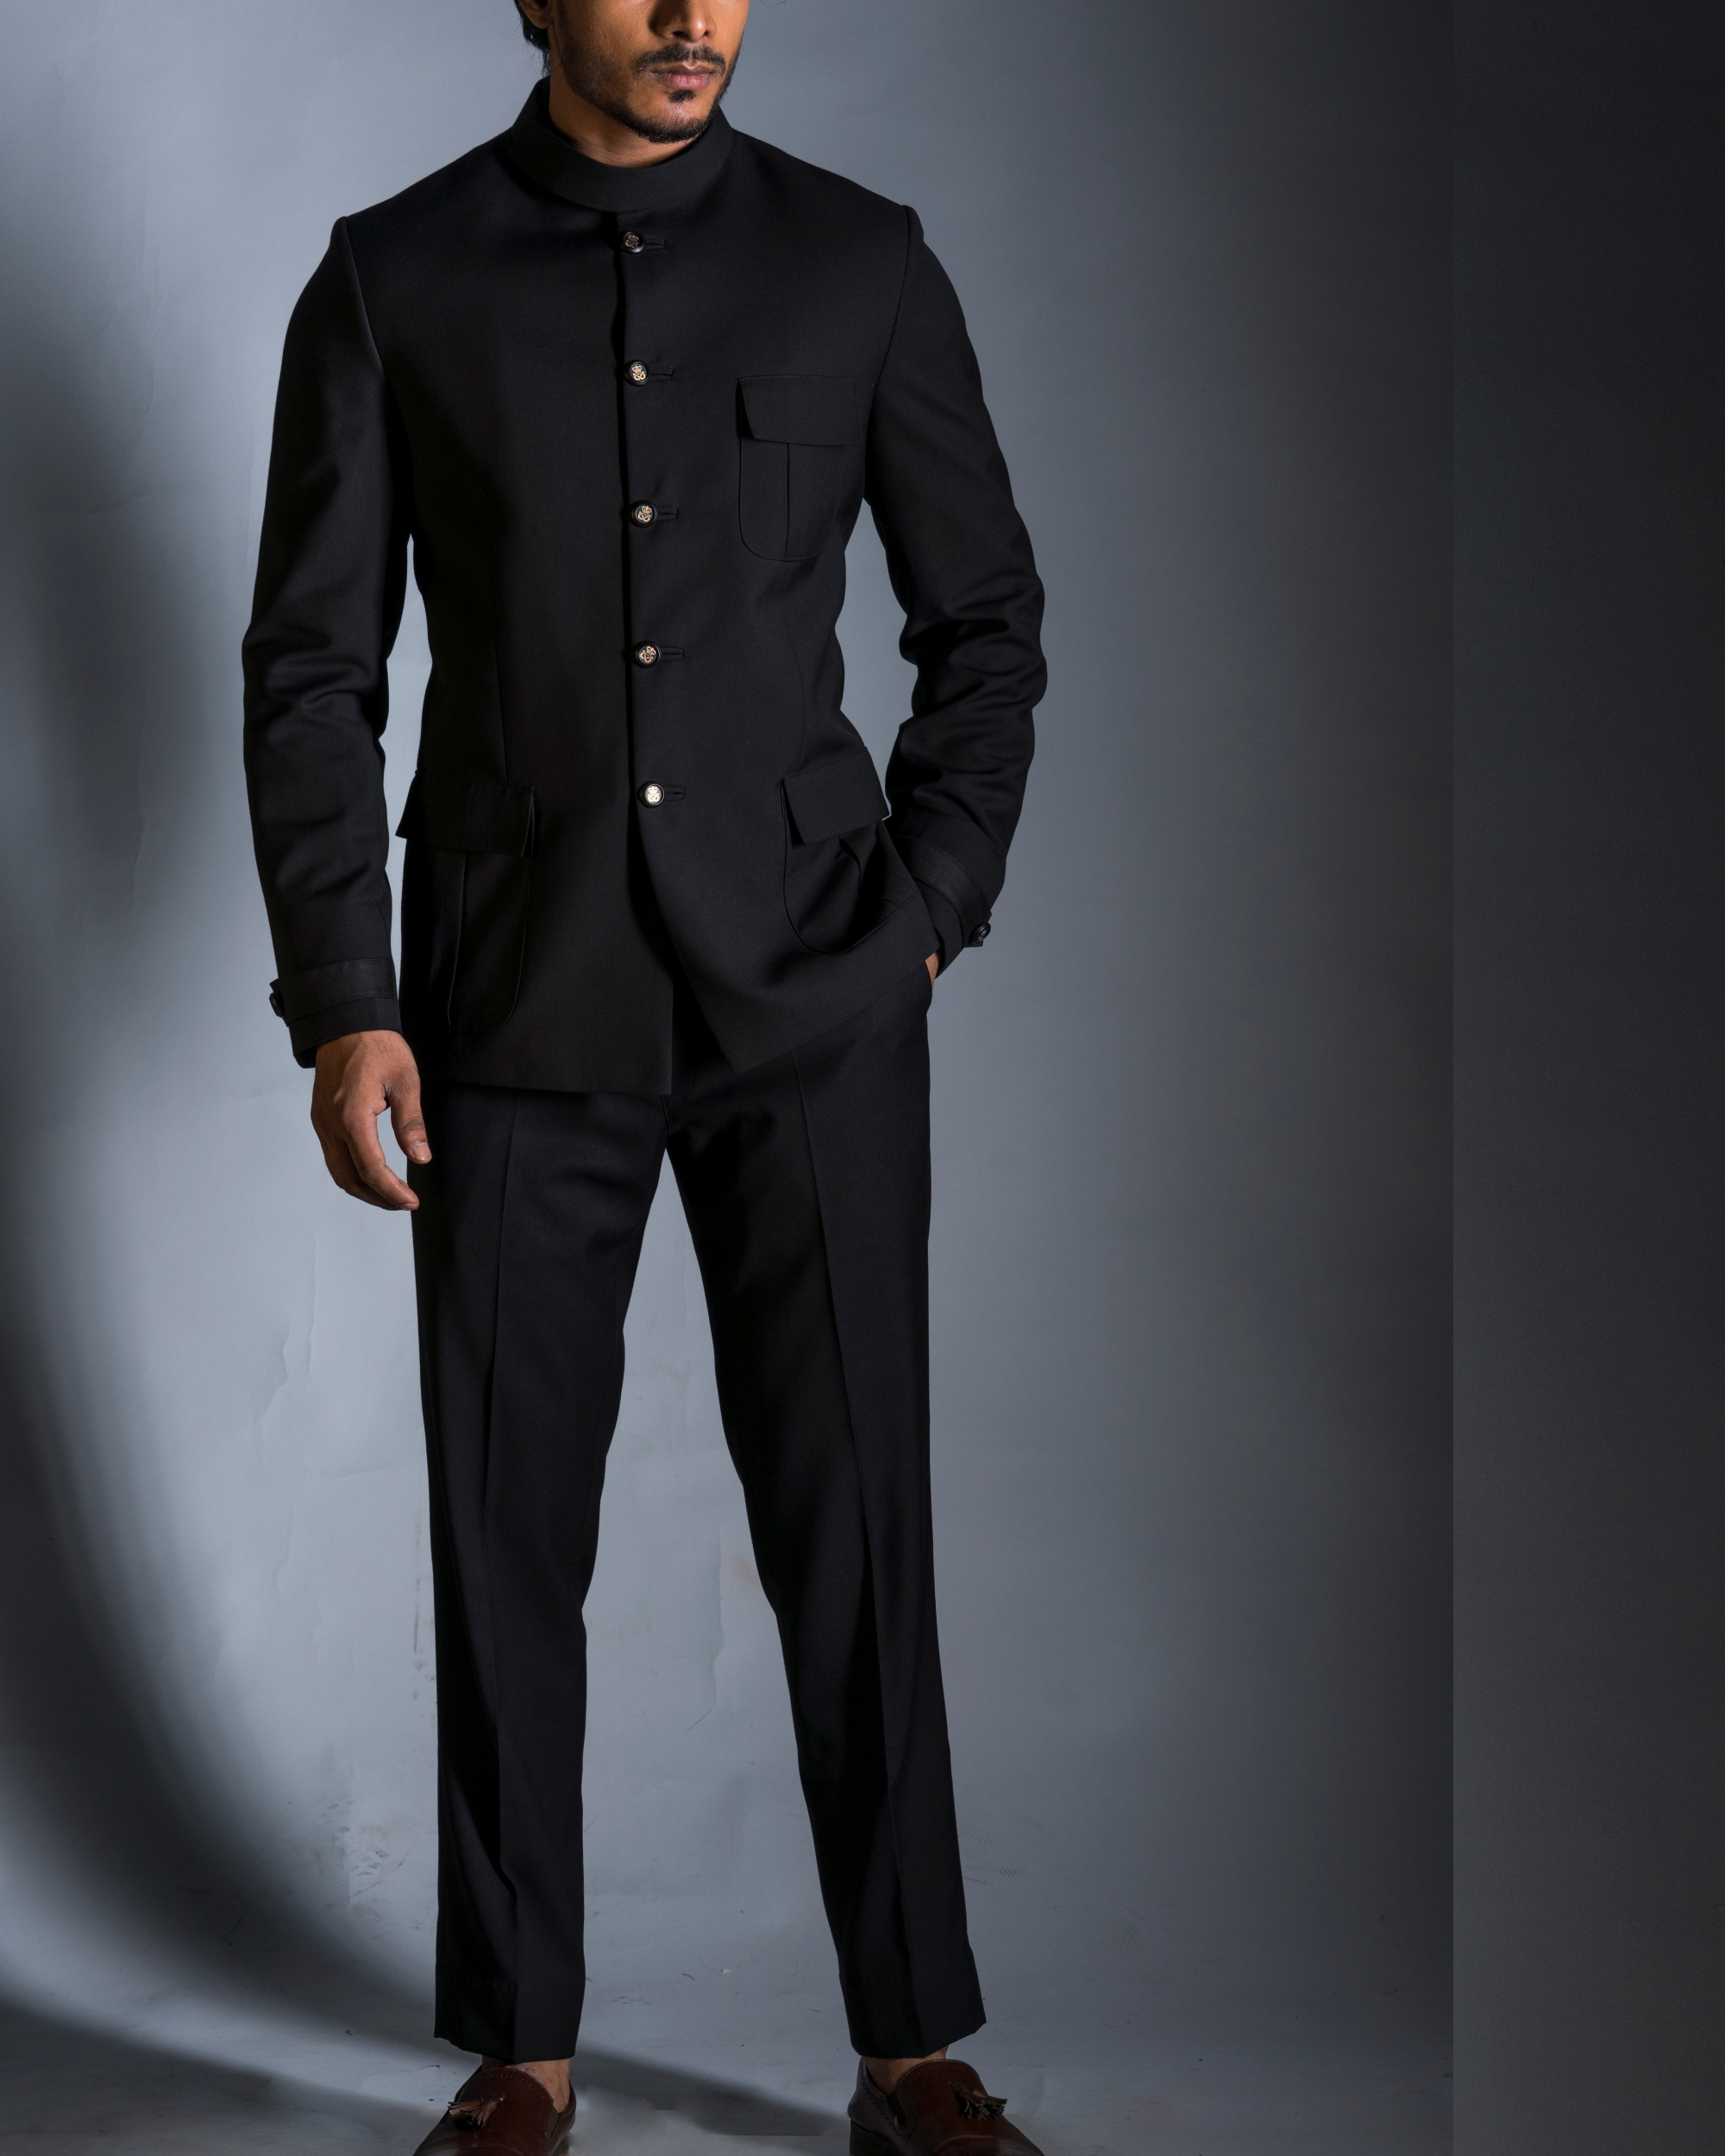 Classic black jacket with trousers